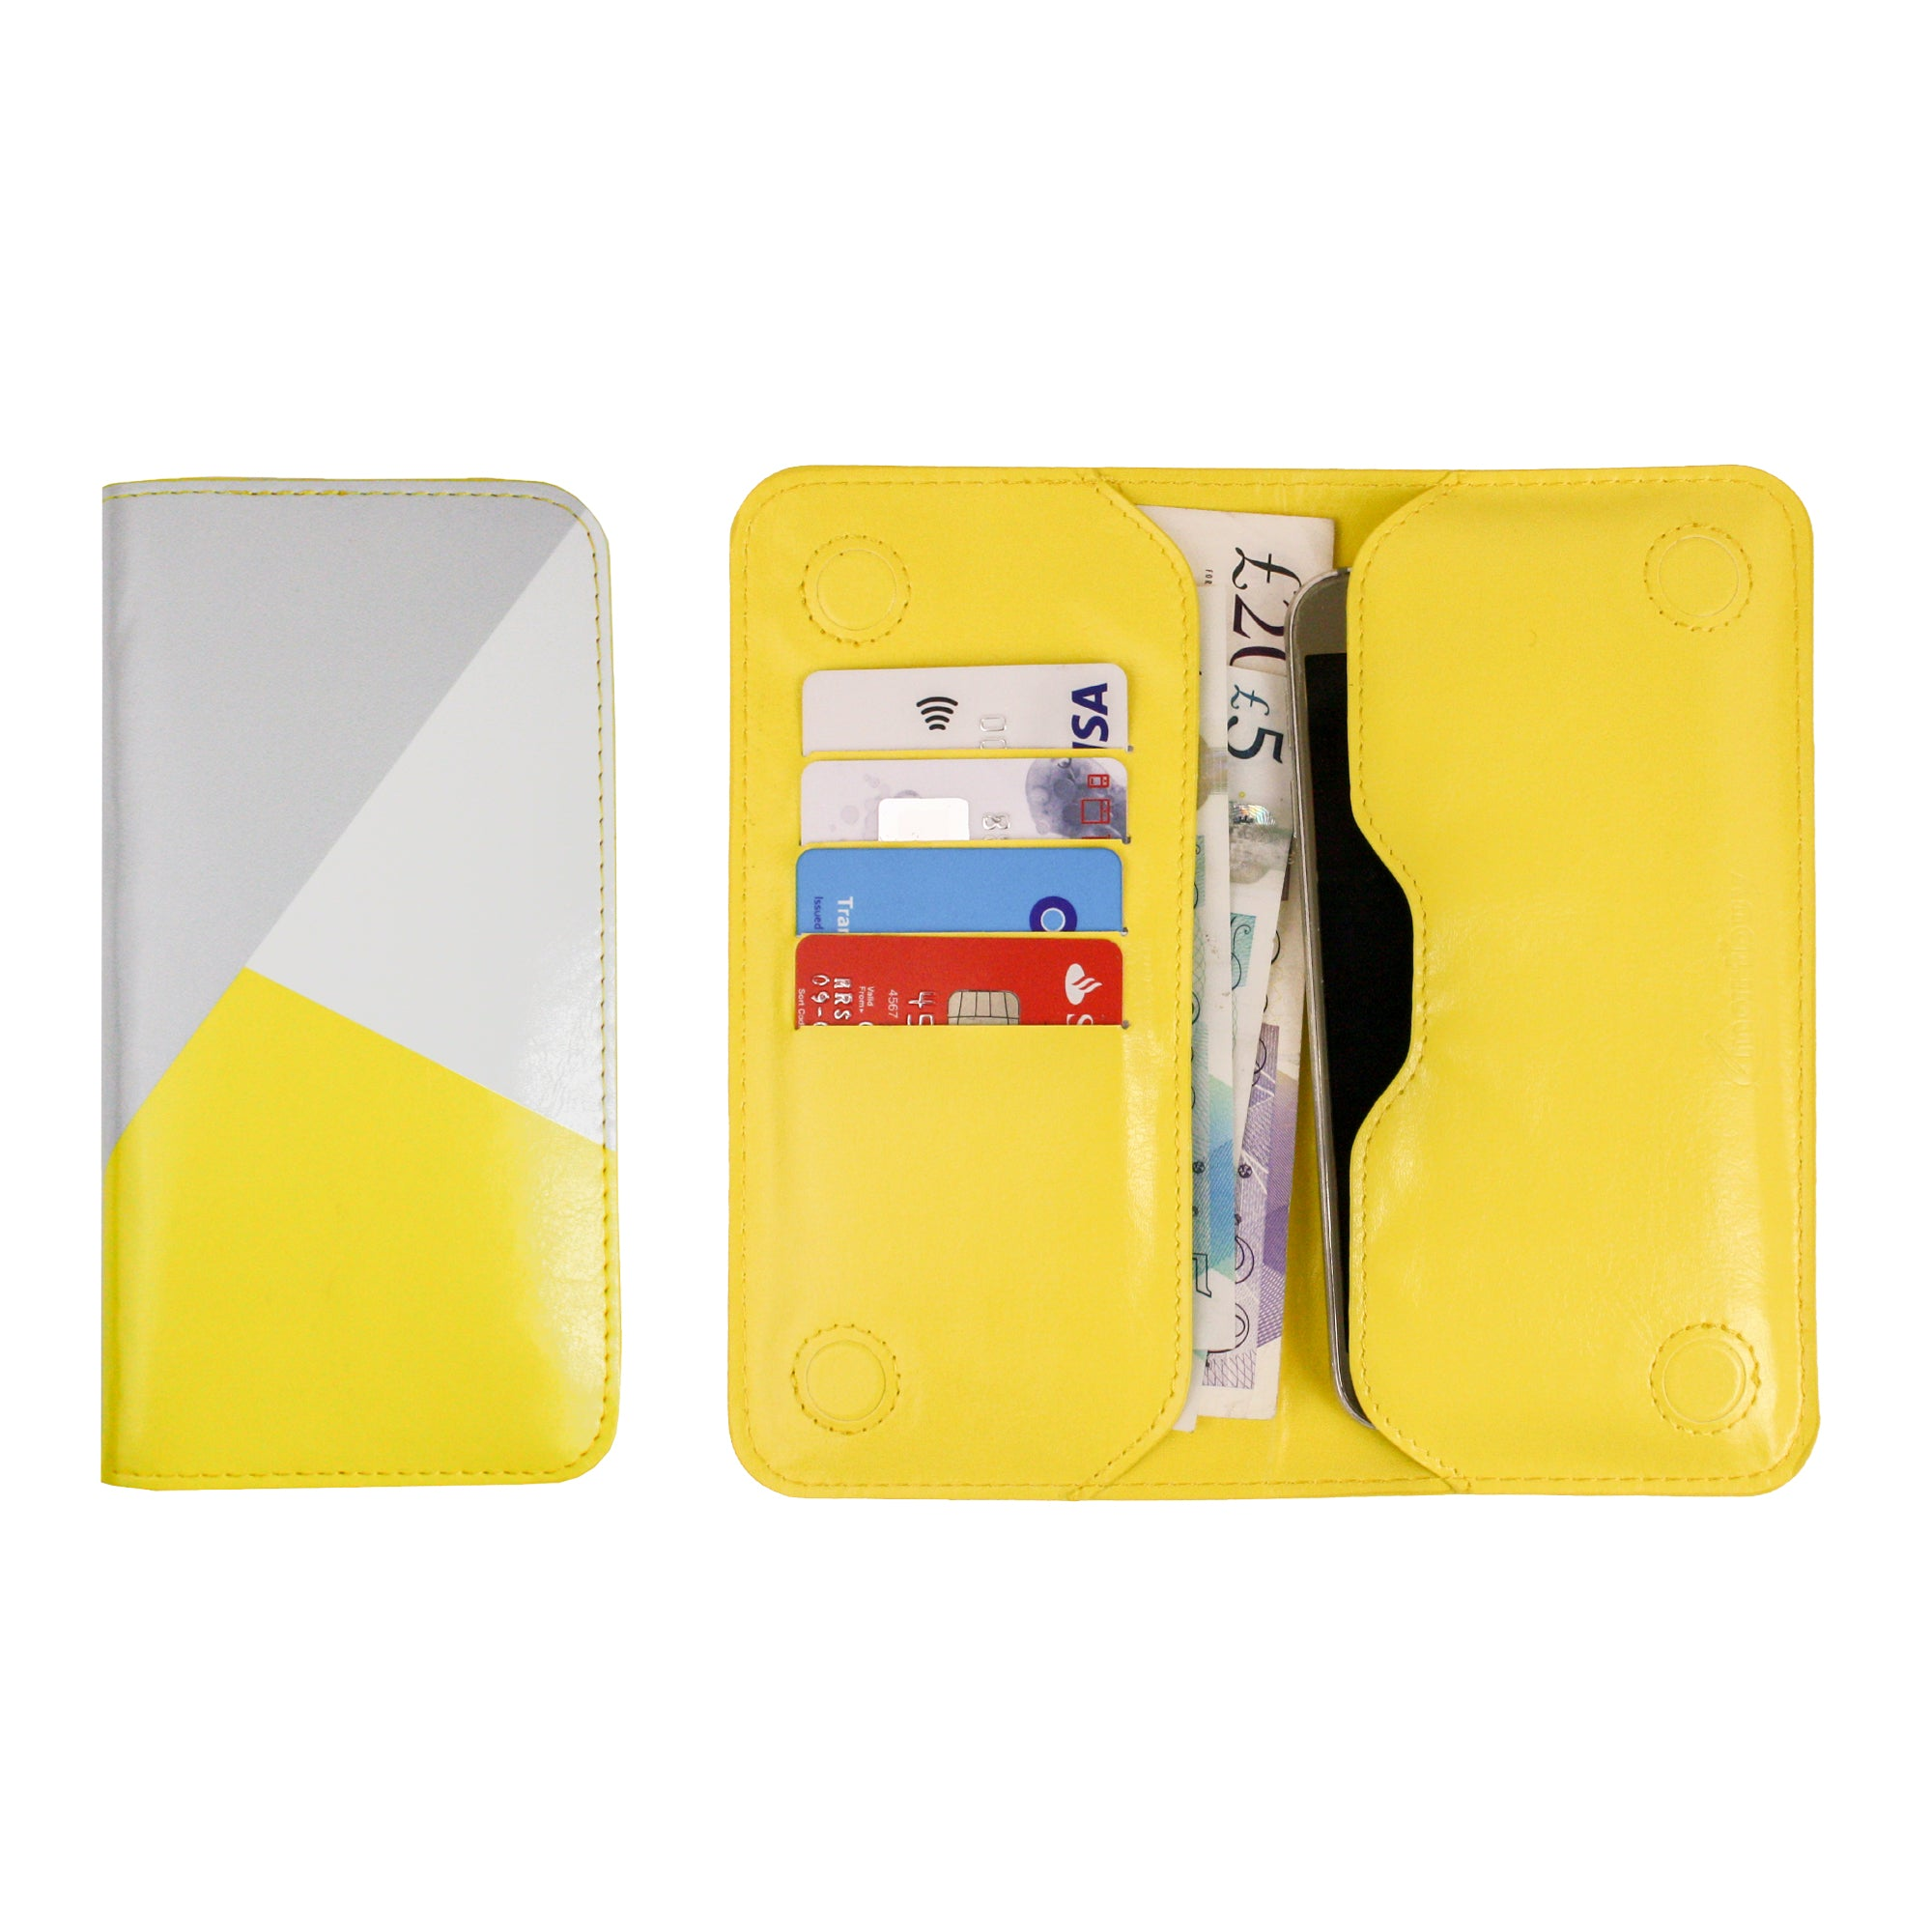 MAGNETIC PHONE WALLET - YELLOW/GREY